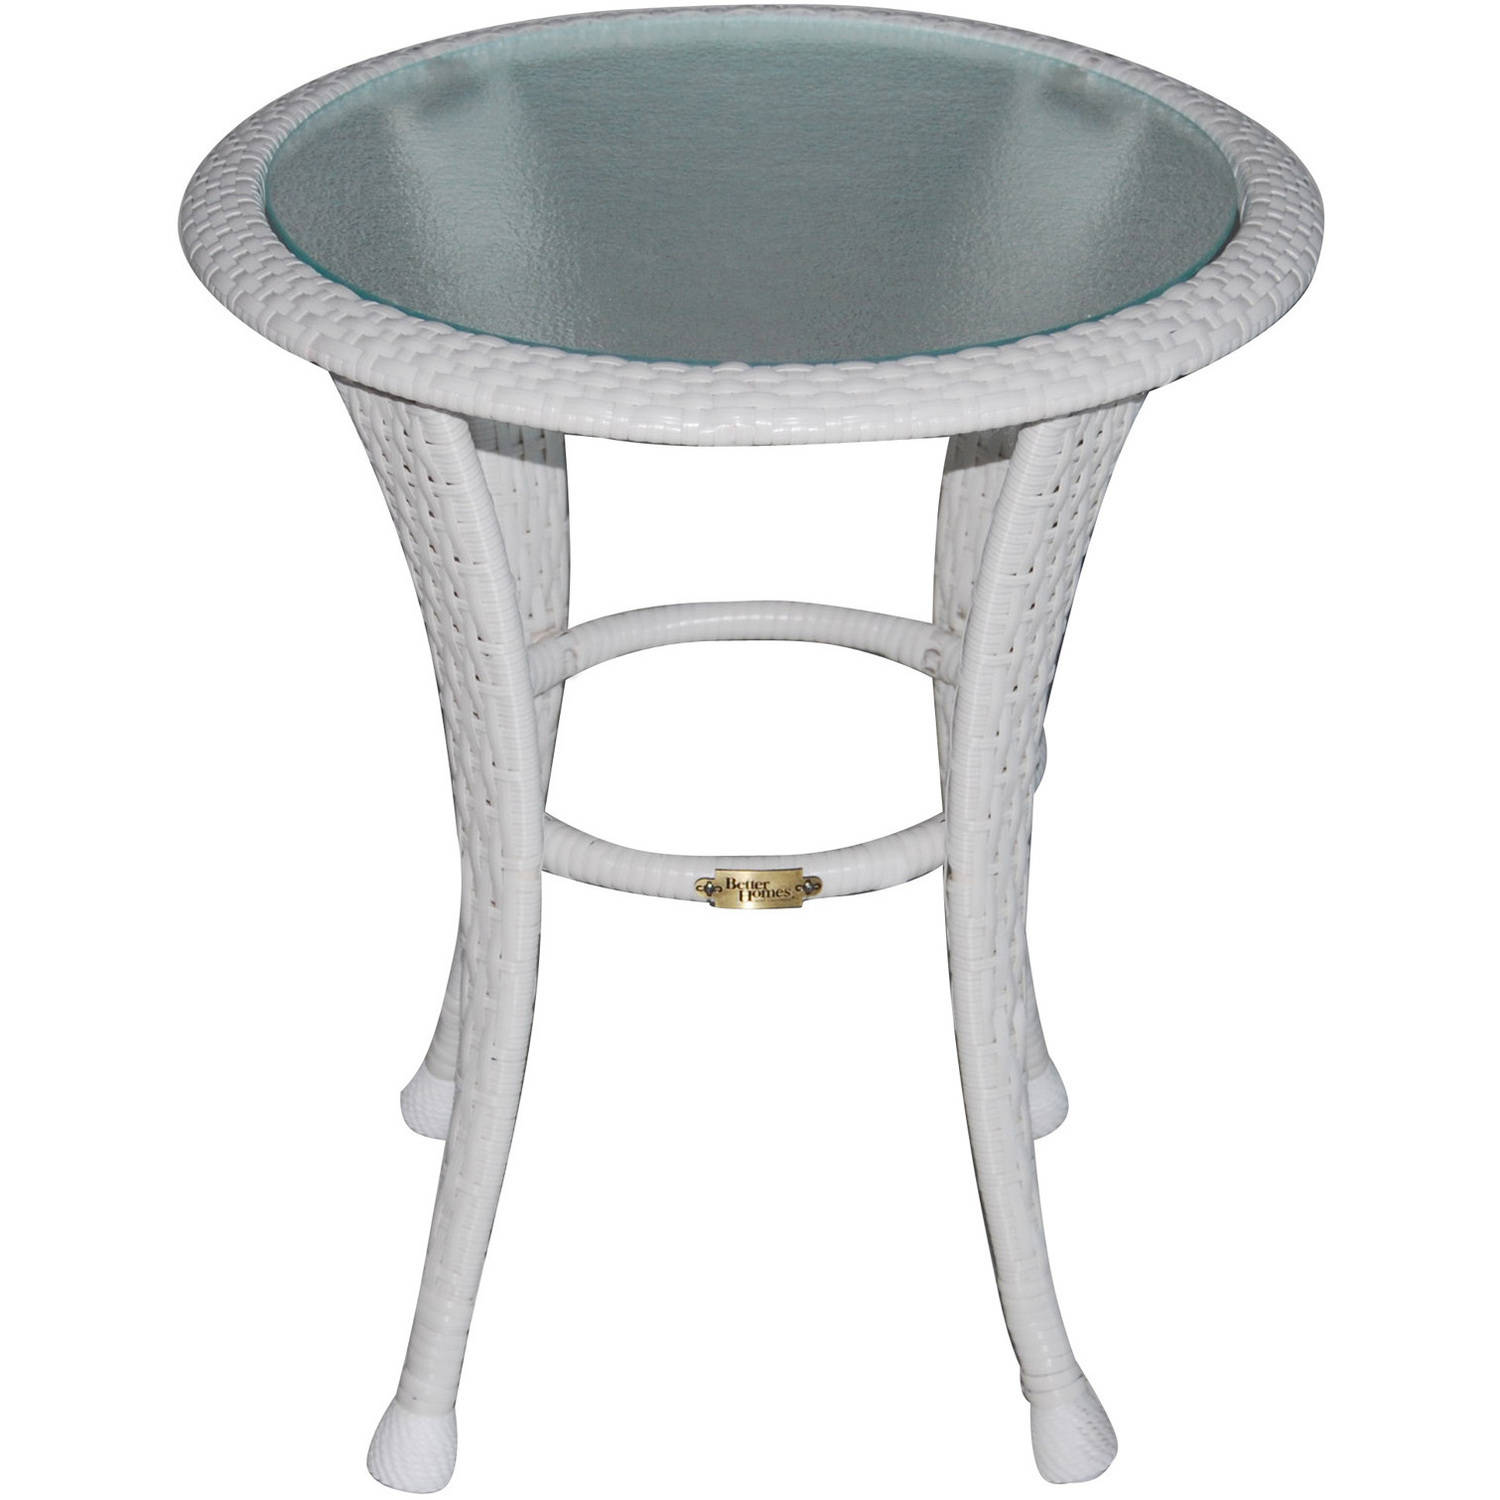 outdoor table patio furniture - walmart.com HAWJONA